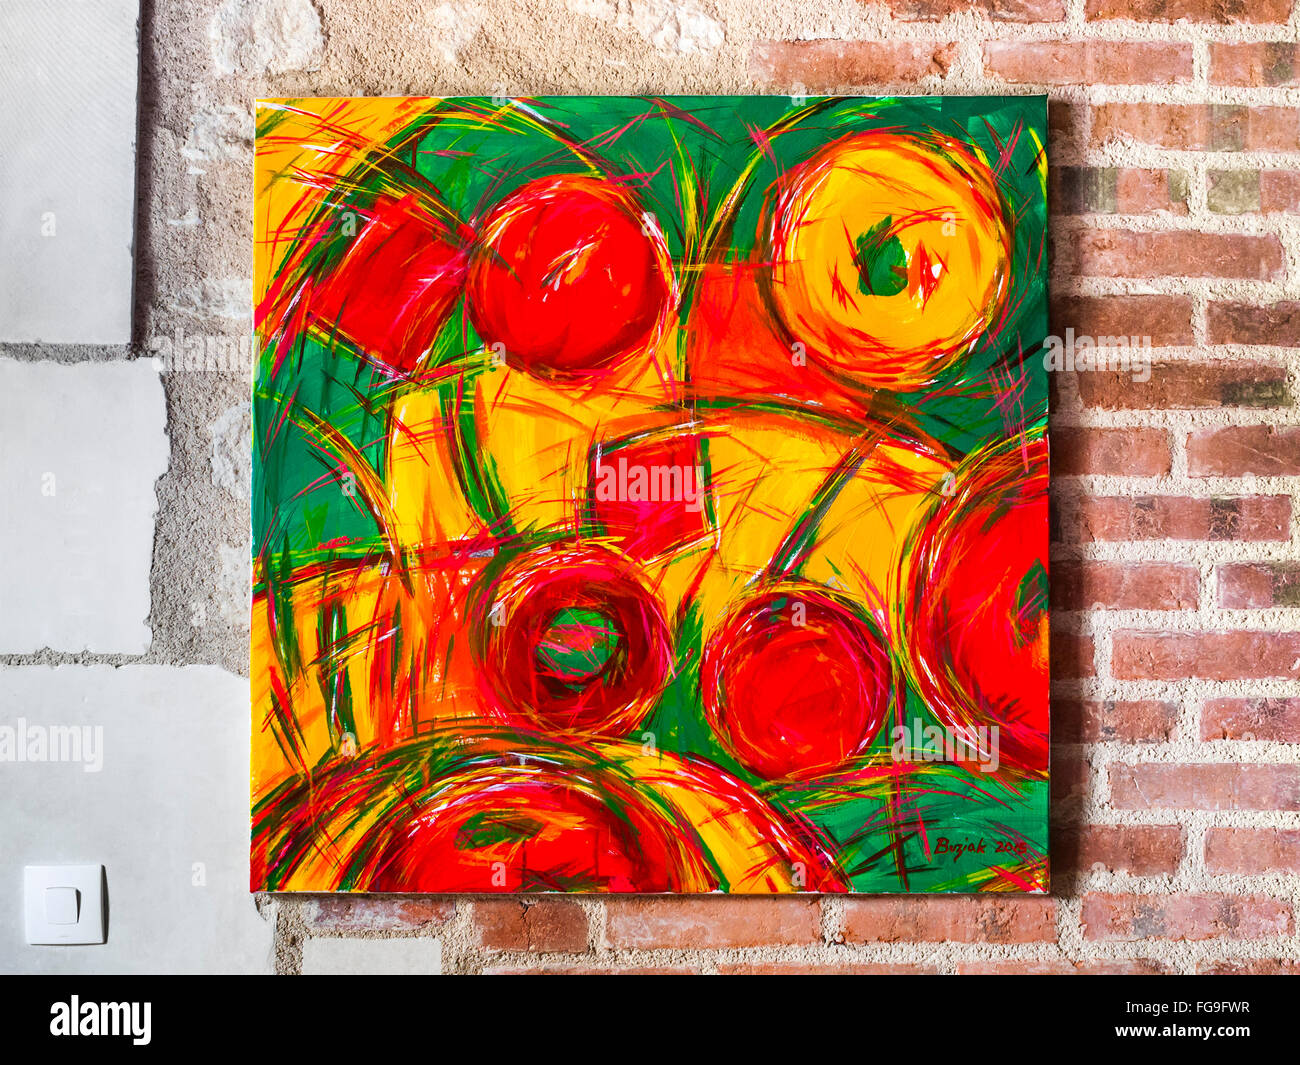 Acrylic painting of fruits / sweets by Ed Buziak. Stock Photo